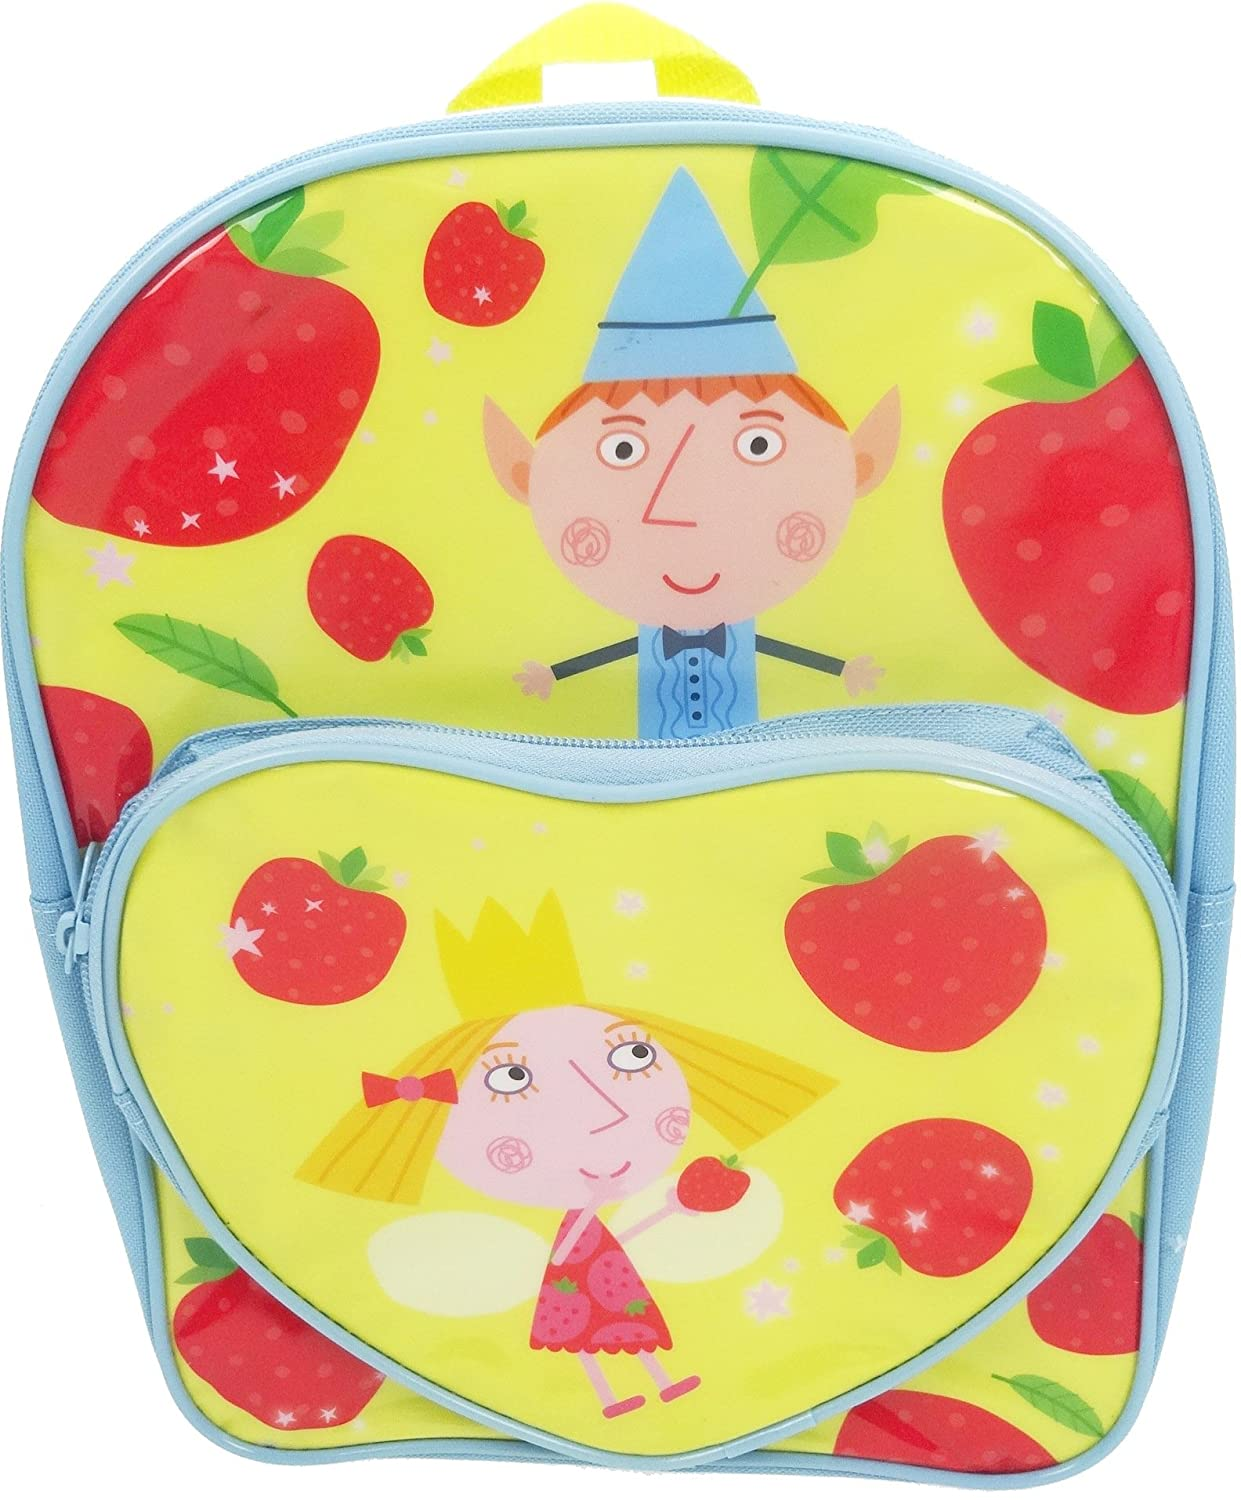 Ben & Holly Mochila infantil, multicolor (Multicolor) - BANDH001018: Amazon.es: Equipaje